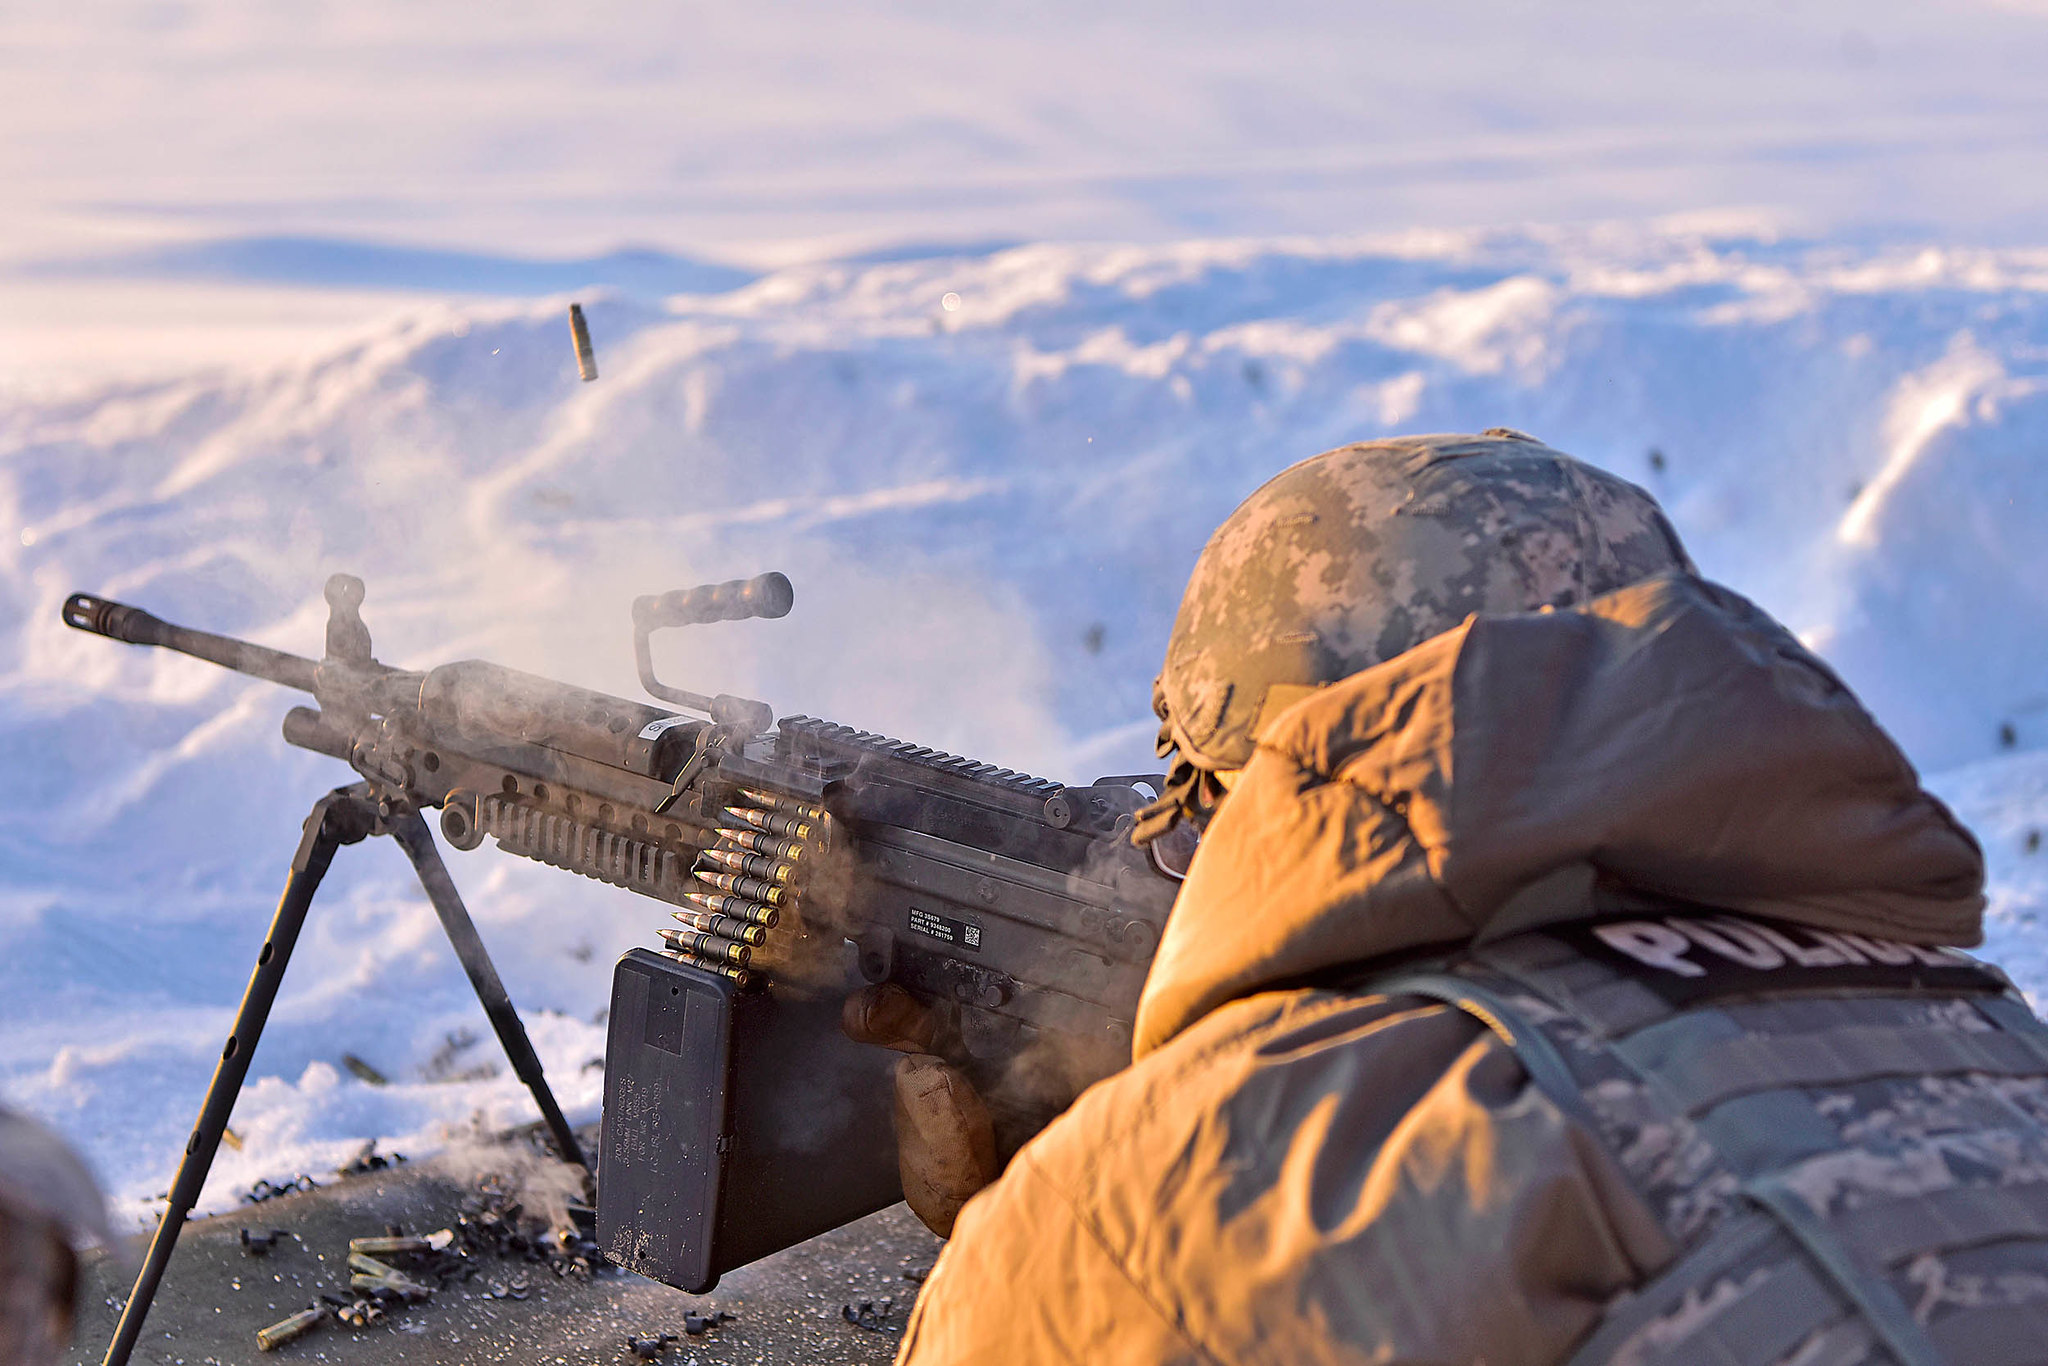 Airman Albert Menchaca, 354th Security Forces Squadron installation entry controller, fires an M-249 Squad Automatic Weapon at Eielson Air Force Base, Alaska, Jan. 9, 2020. (Senior Airman Beaux Hebert/Air Force)